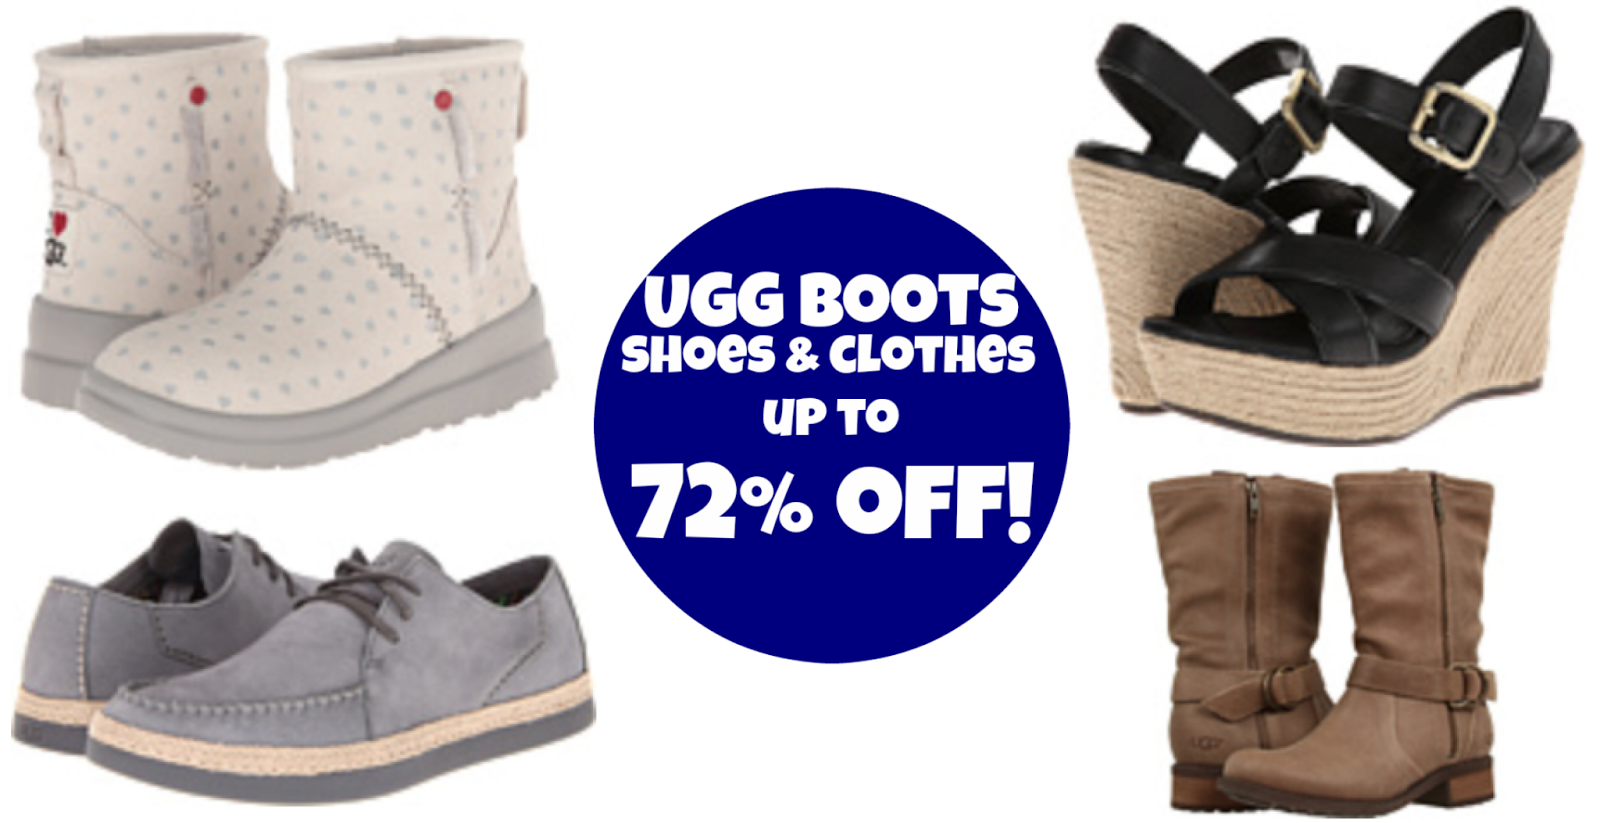 http://www.thebinderladies.com/2015/01/6pm-up-to-72-off-ugg-boots-clothing.html#.VLdB04fduyM